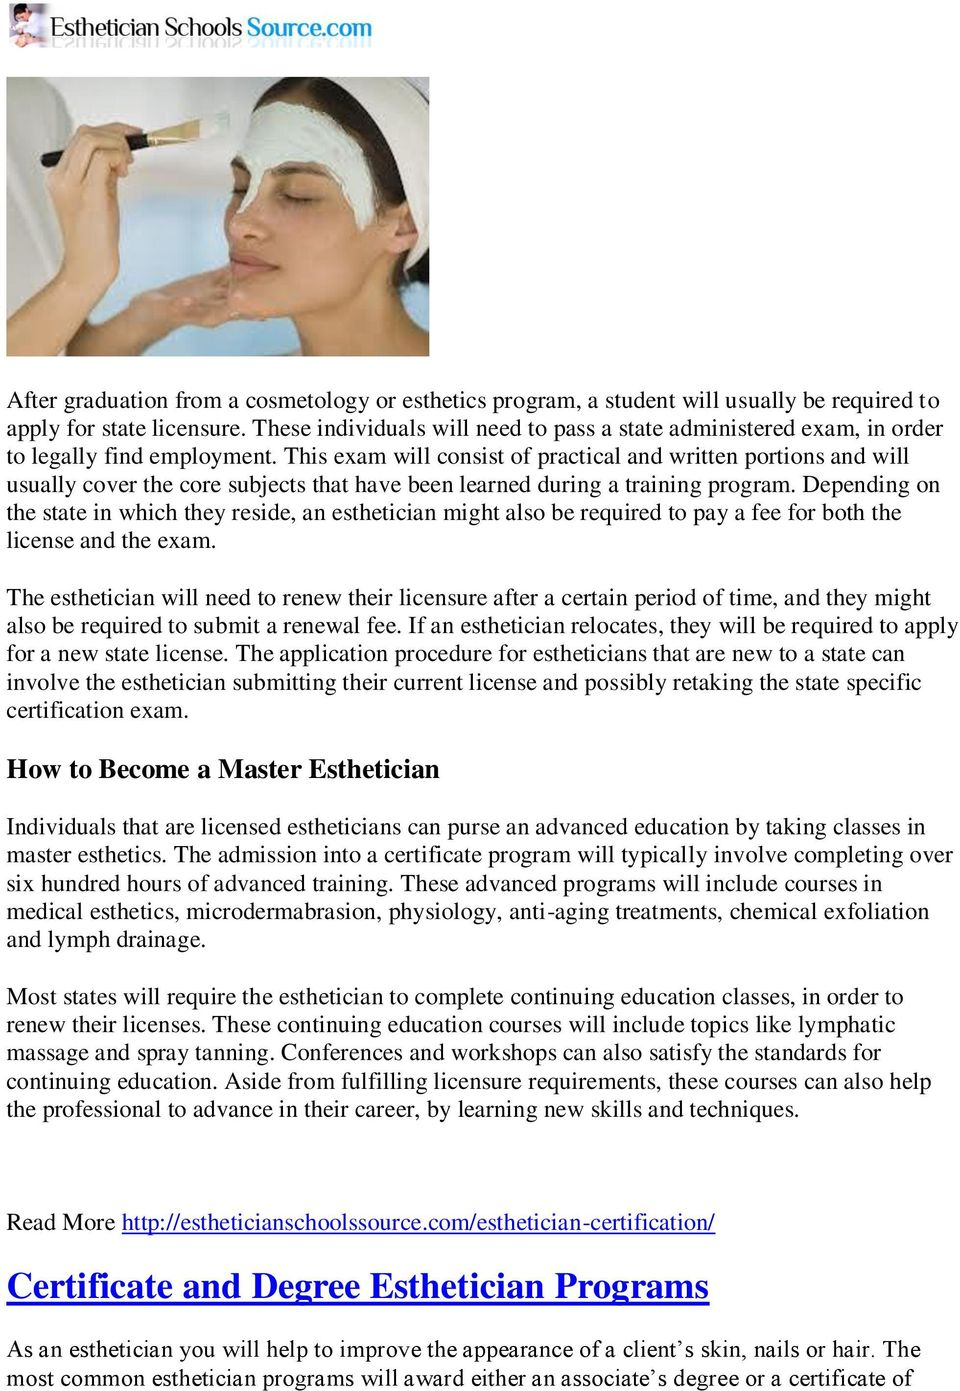 Esthetician Schools and Core Classes  Licensing and